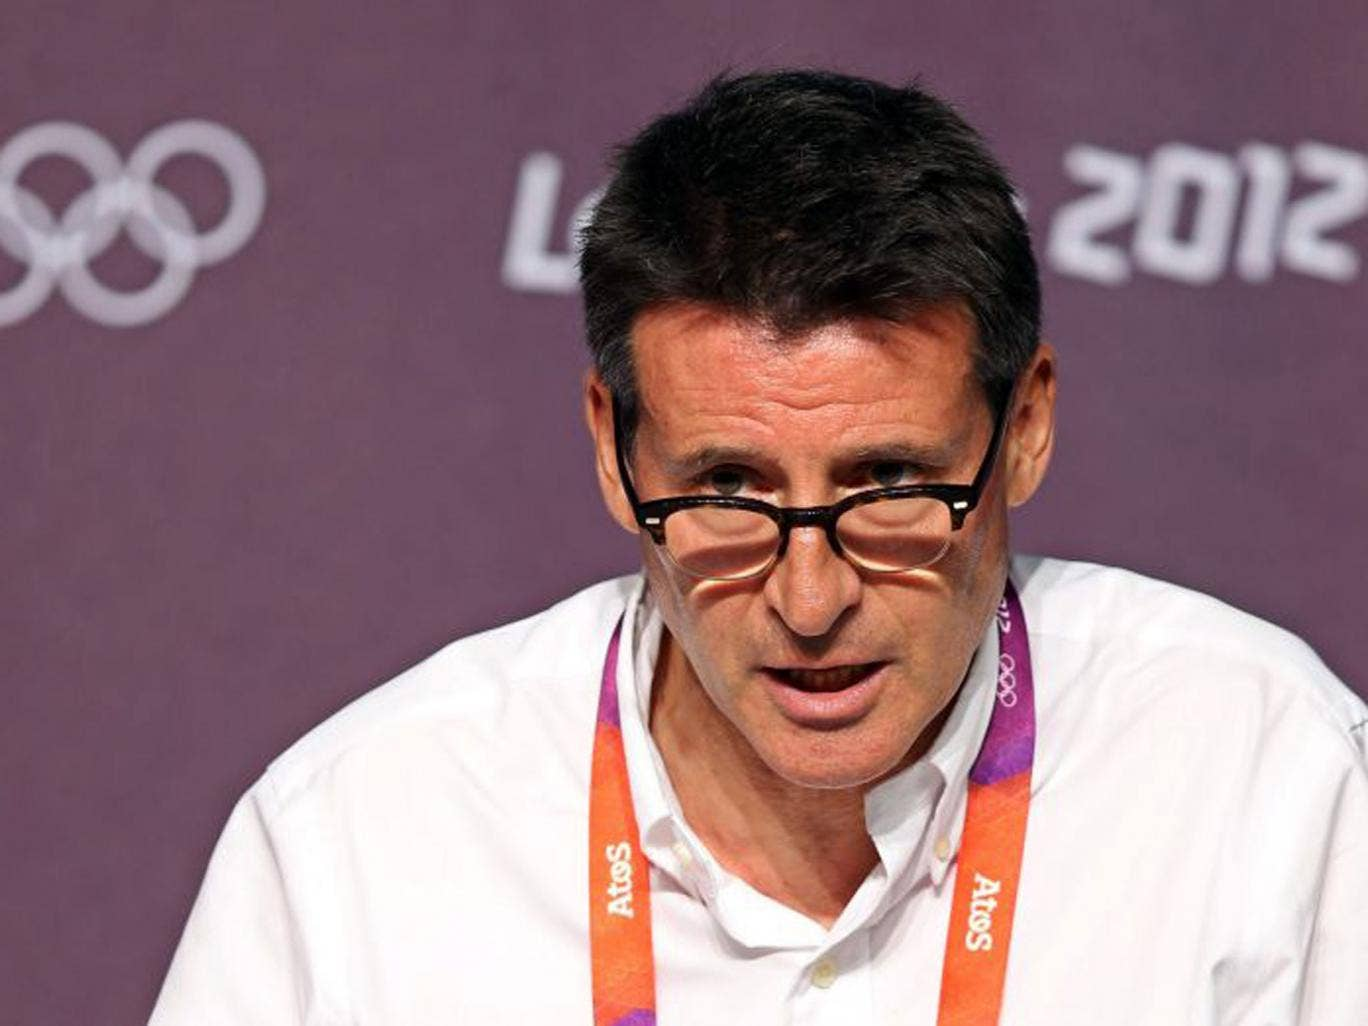 Lord Coe urged the public to secure items from the Games